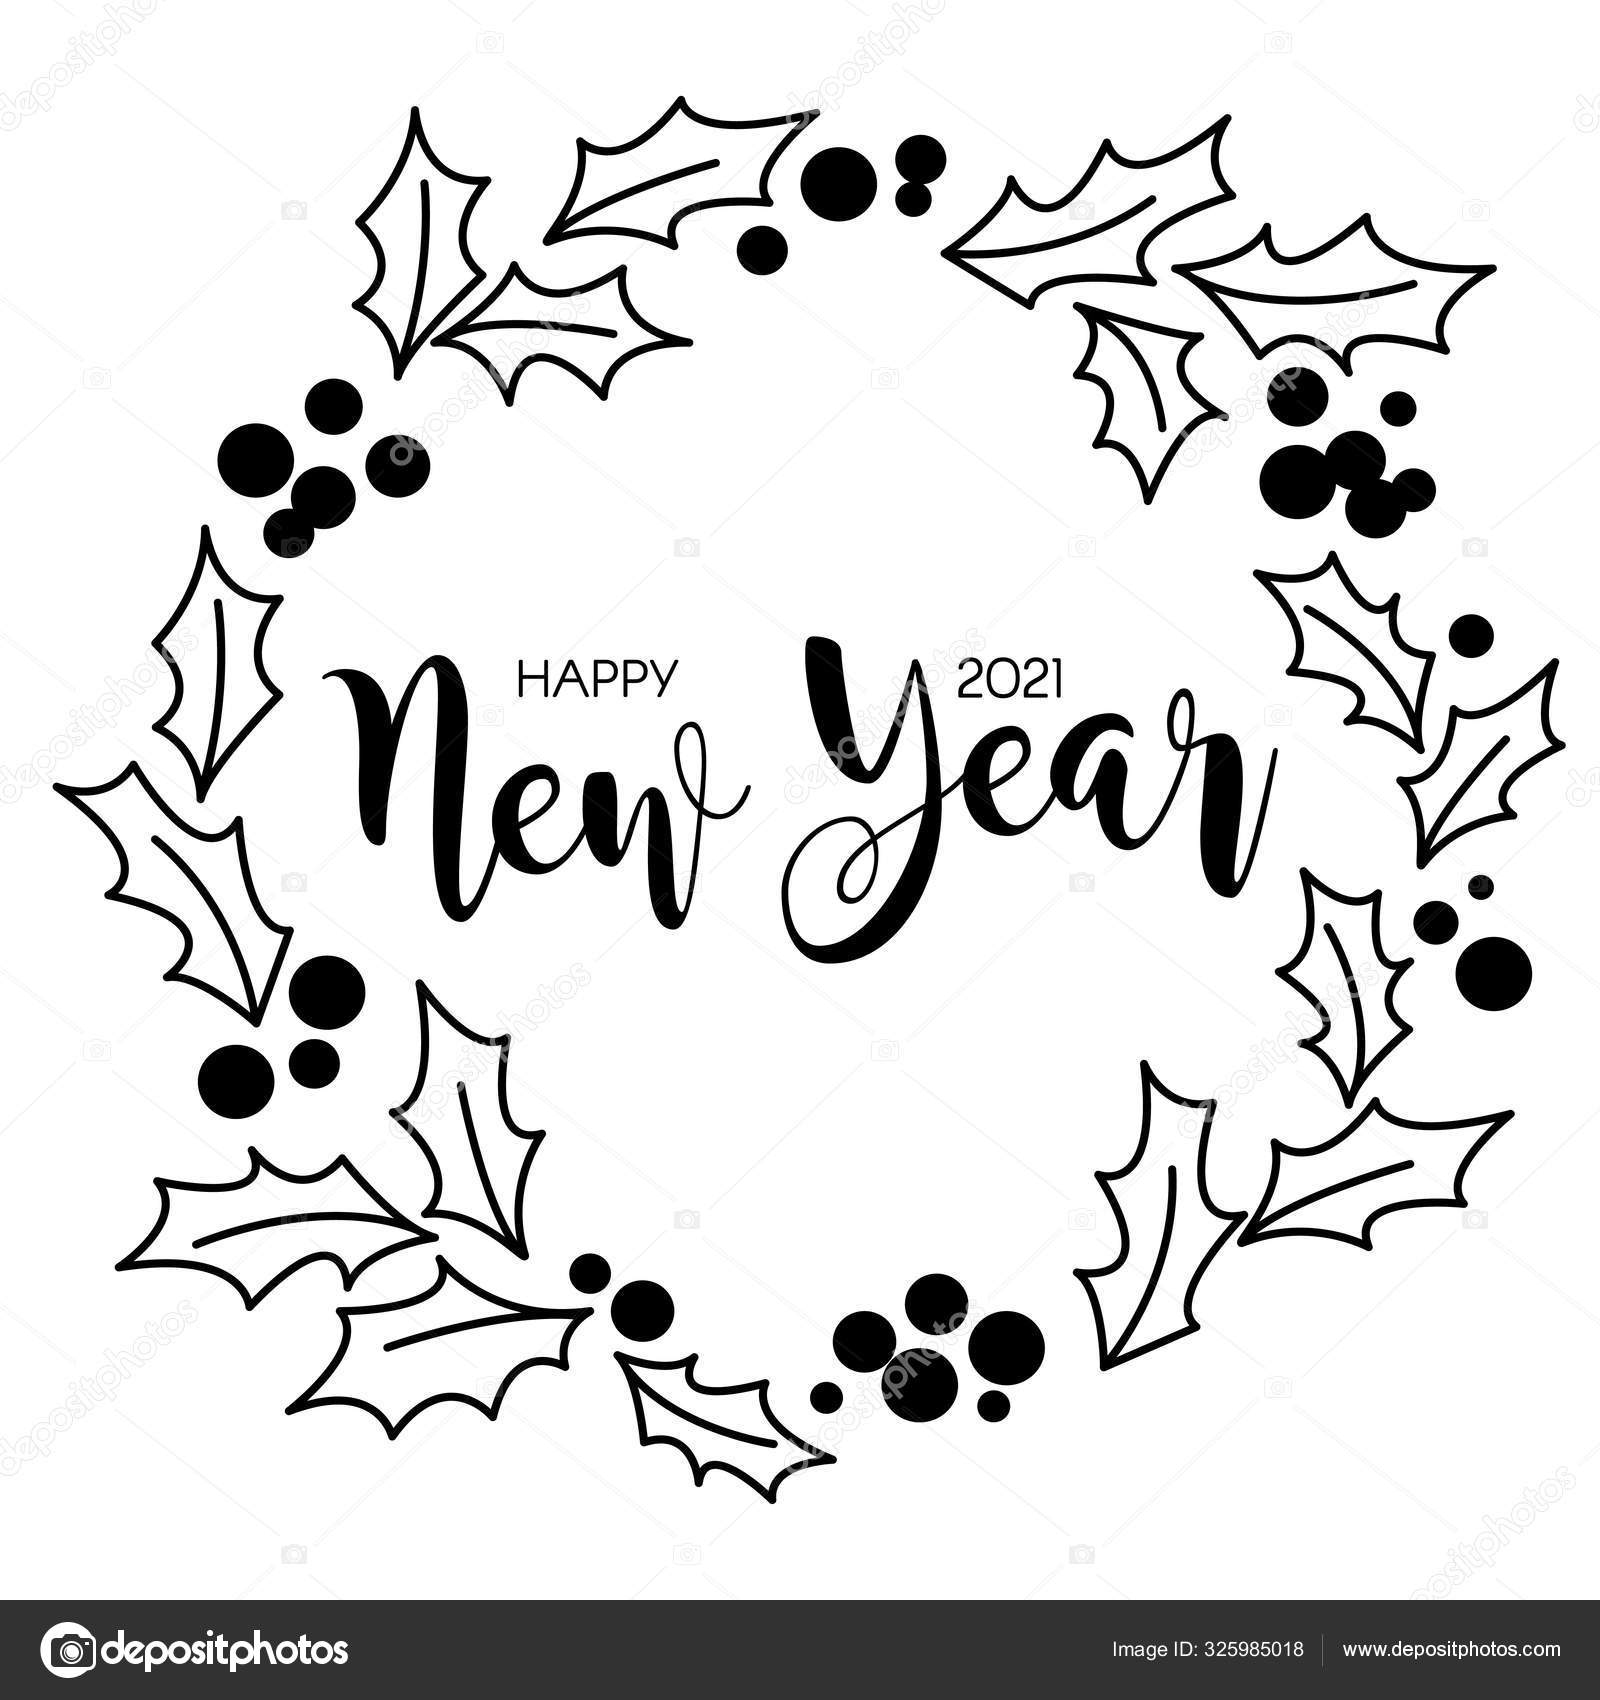 Happy New Year 2021 Christmas Wreath Isolated Stock Vector C Irchiknaz Gmail Com 325985018